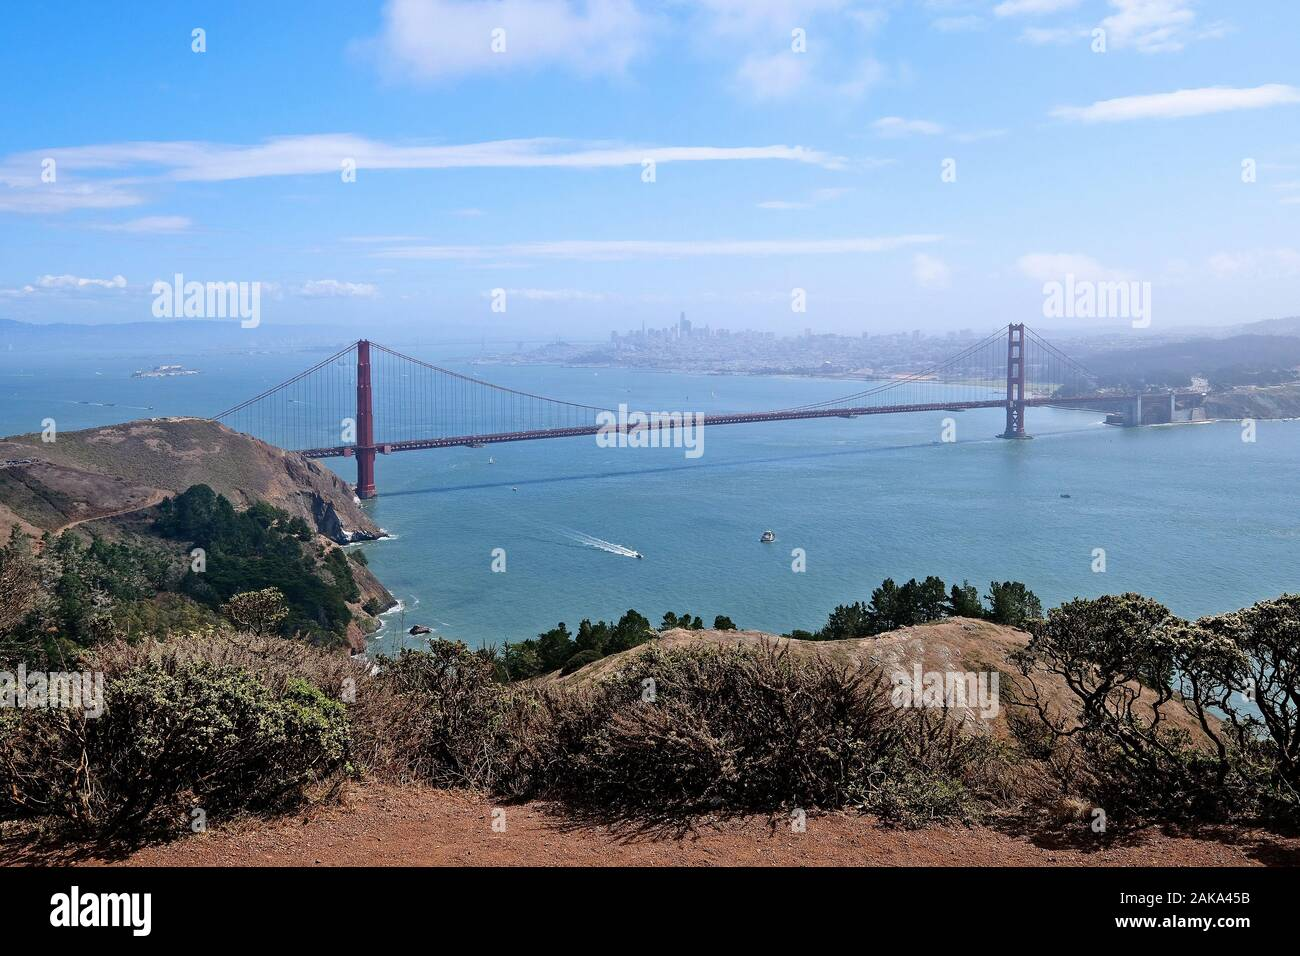 View of the Golden Gate Bridge from Hawk Hill at the northern end of the bridge, San Francisco, California, USA Stock Photo